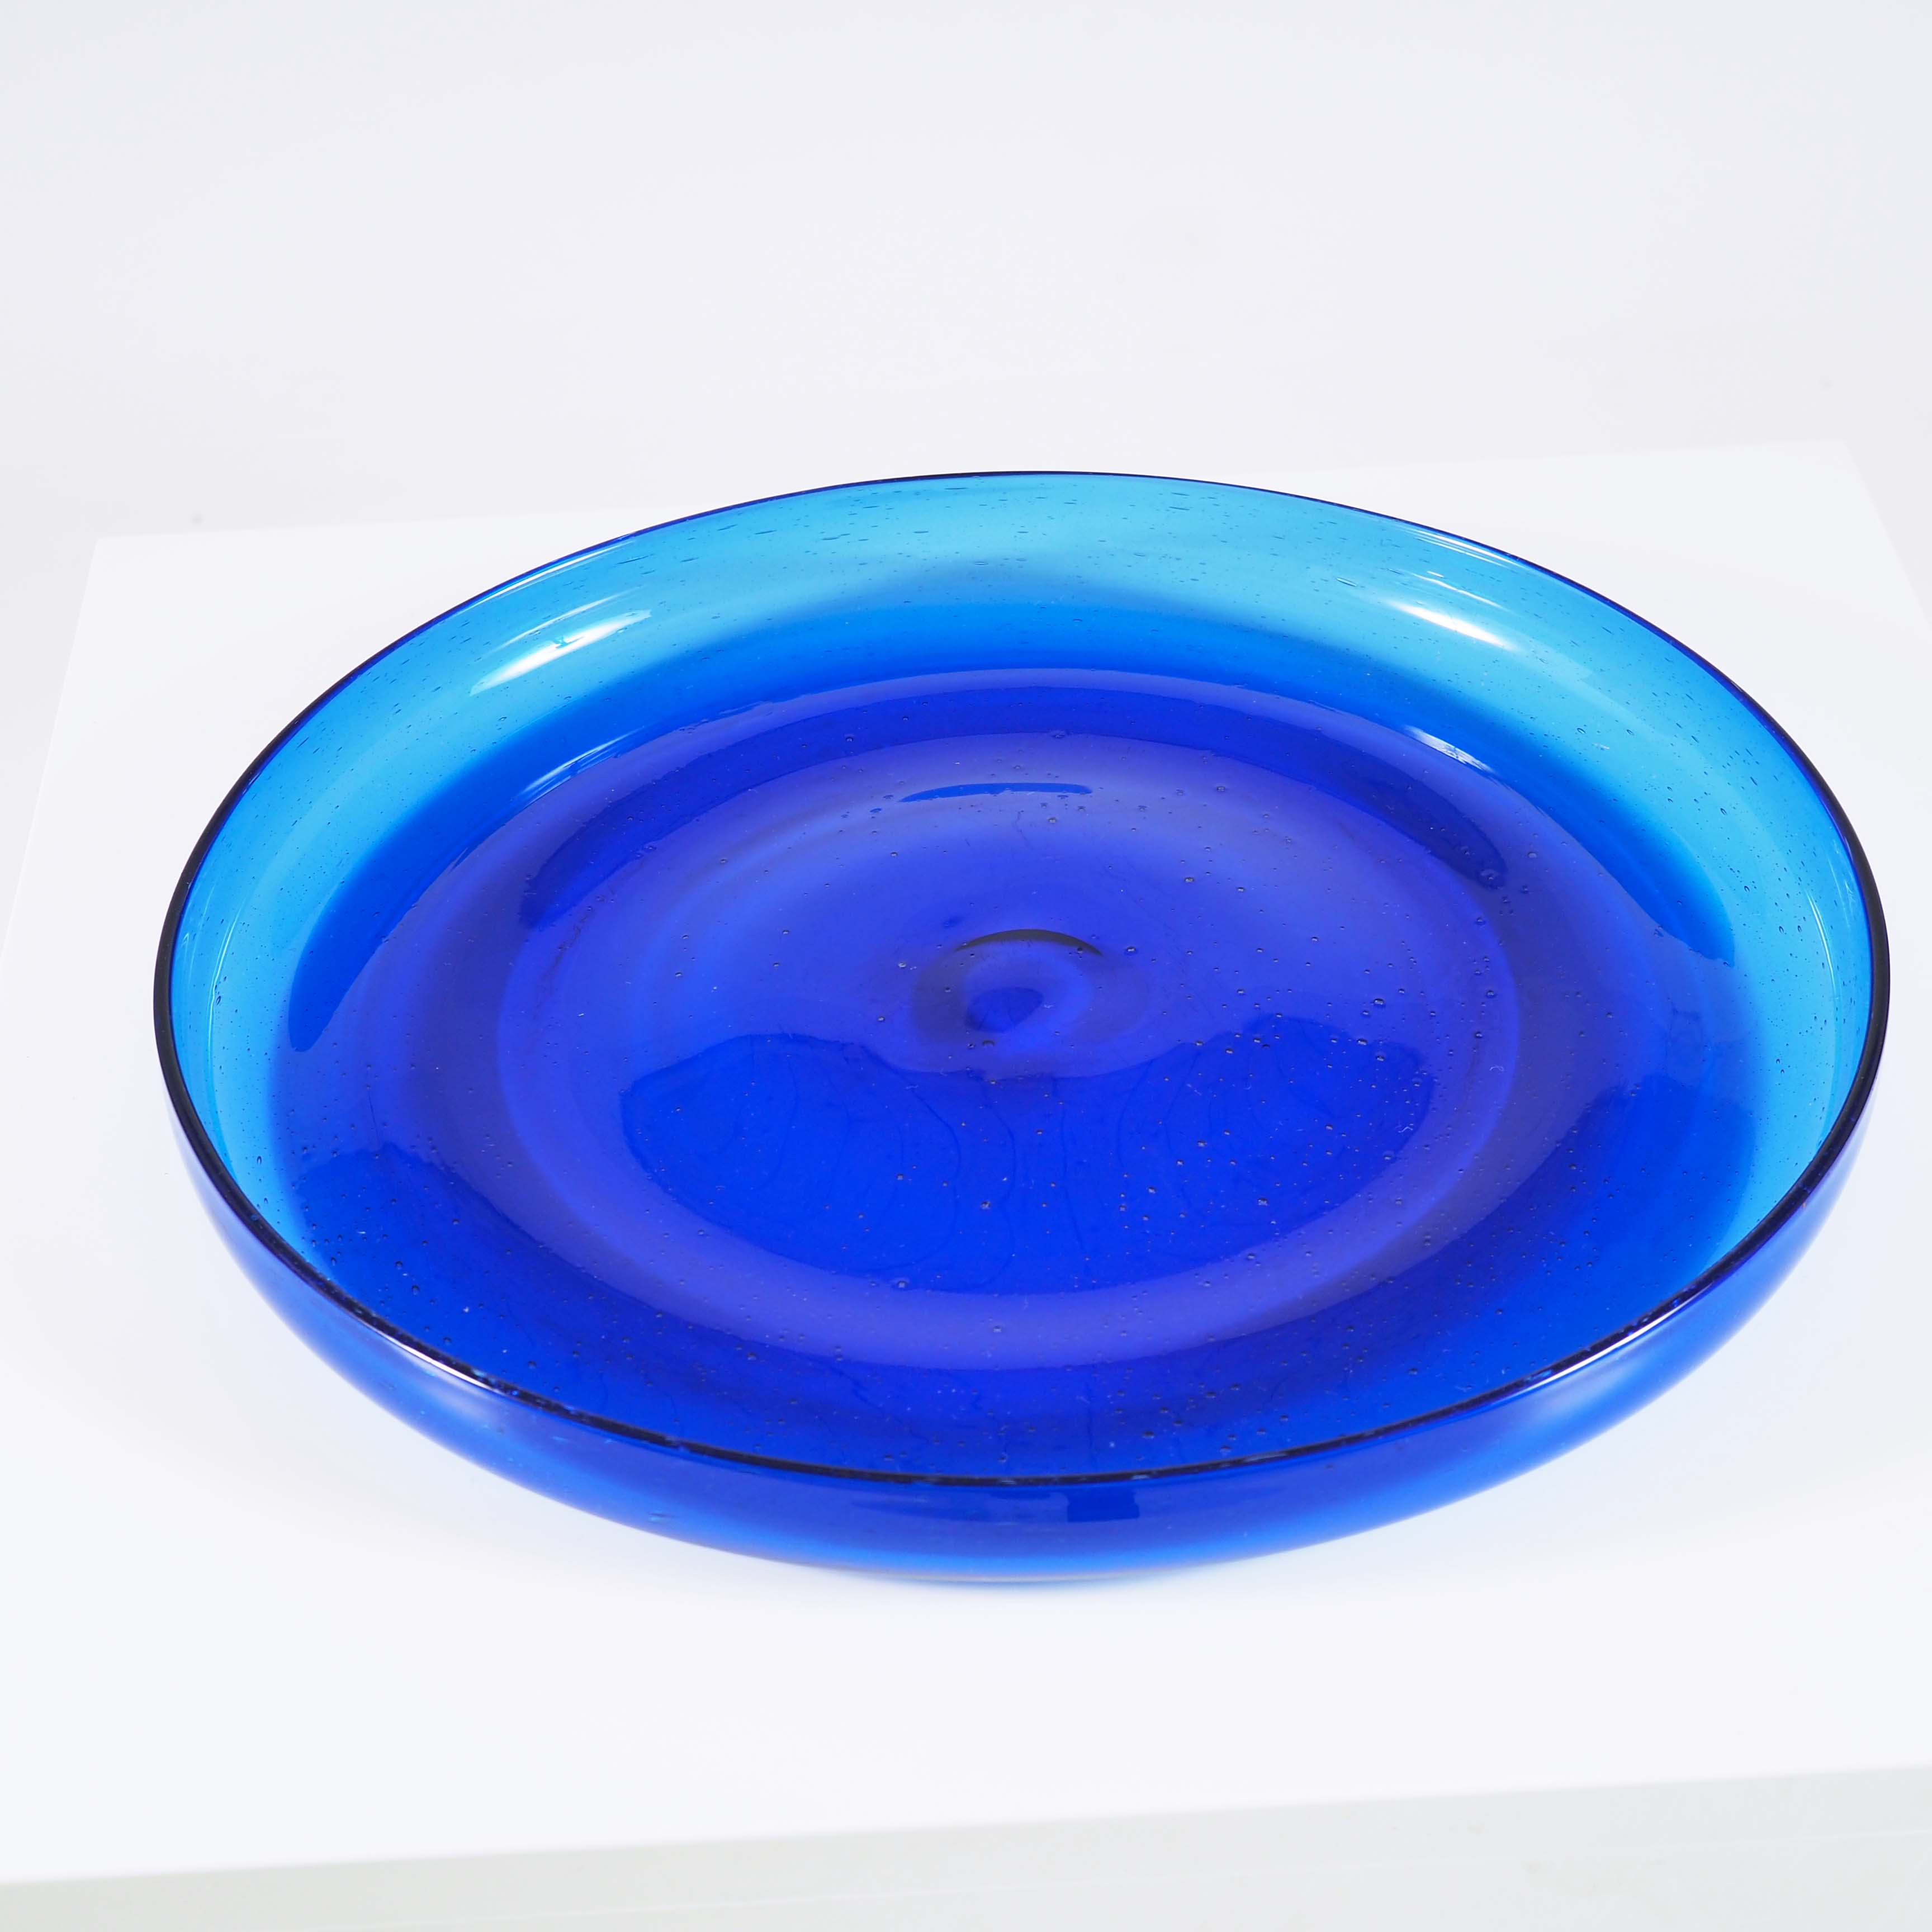 Blue glass tray by Erik Höglund, Boda, Sweden